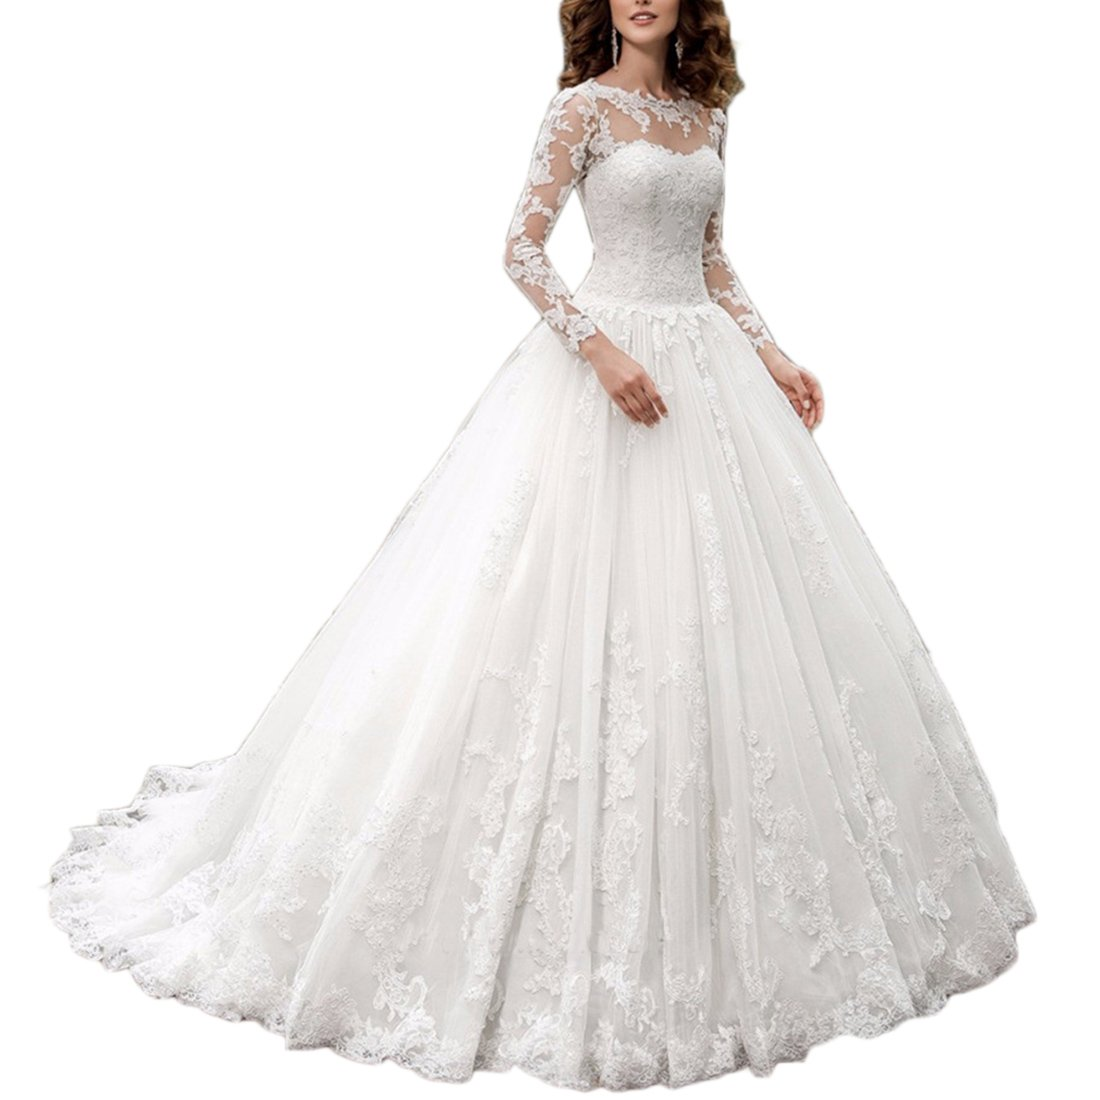 Westcorler Castle Princess China Wedding Dresses 2017 Lace Long Sleeve Plus Size Ball Gown (24w, Ivory)